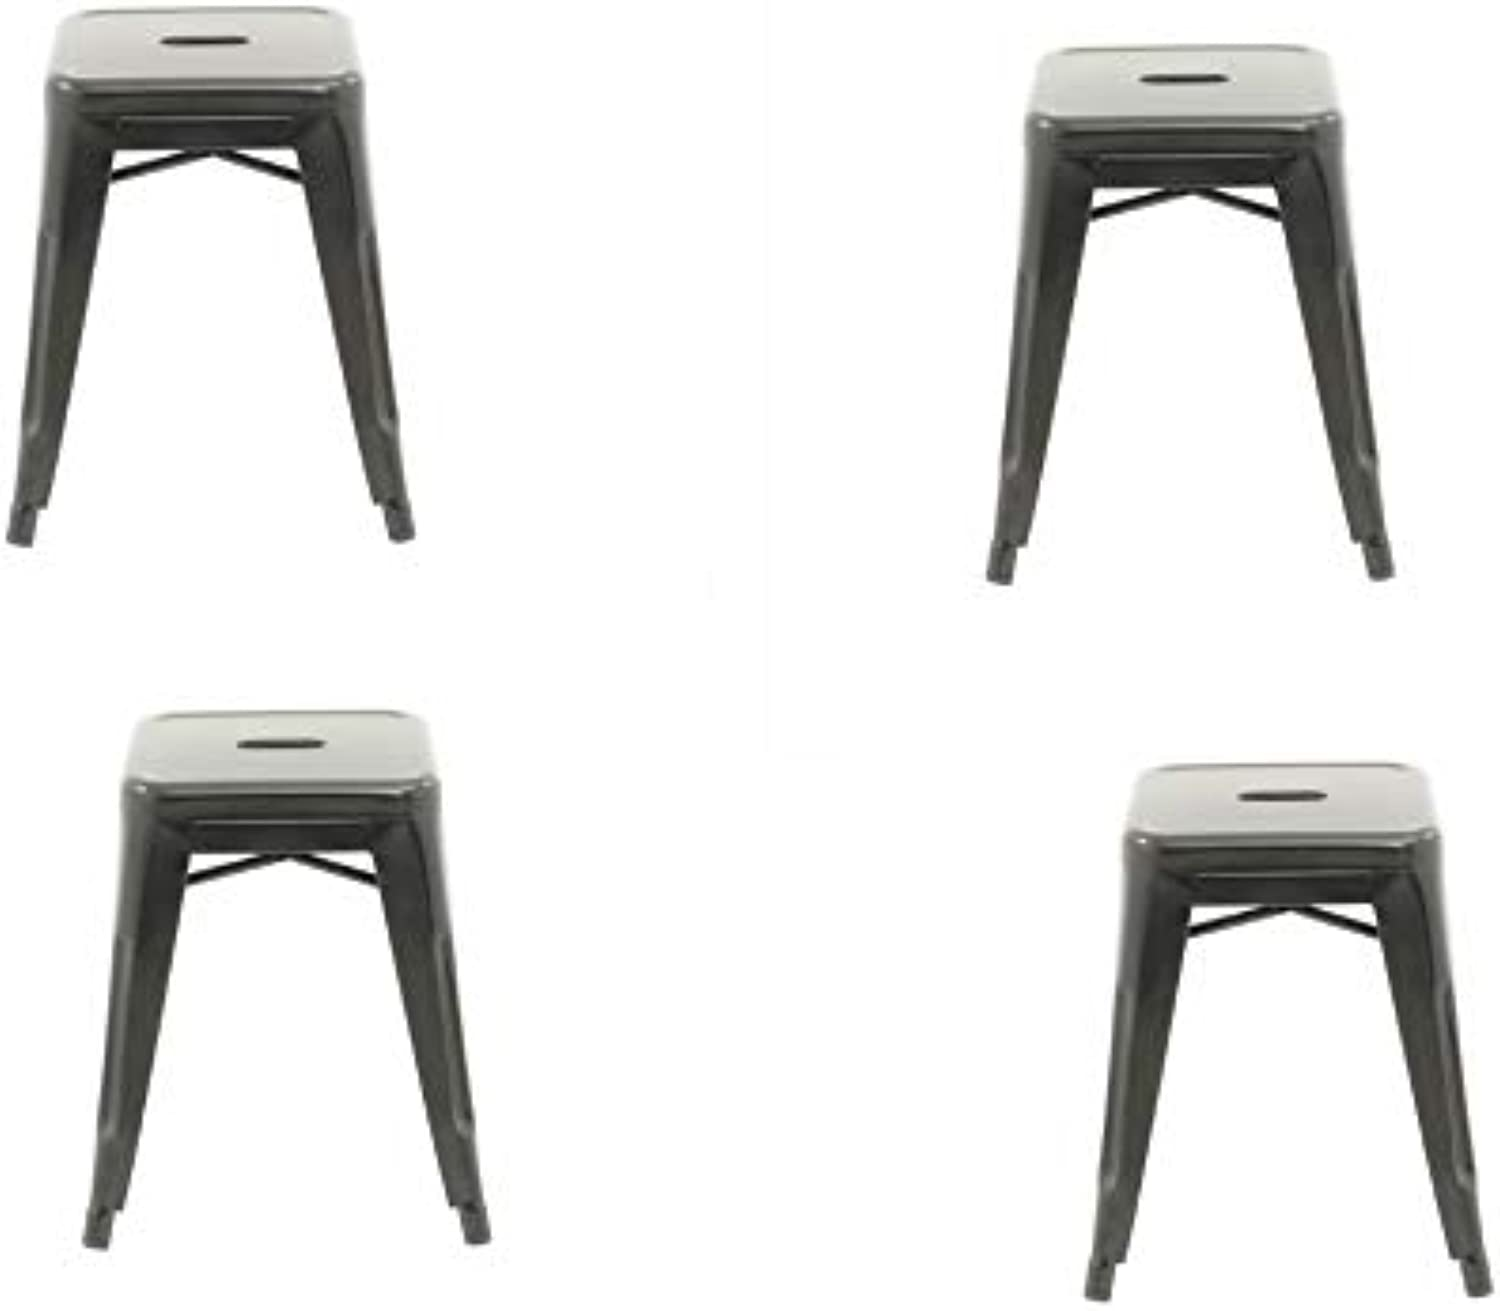 Take Me Home Furniture TMH-TH-1001-18-GR-set4 Barstool Mini Tolix Colour Grey Set of 4, Perfect for Kids, barfurniture